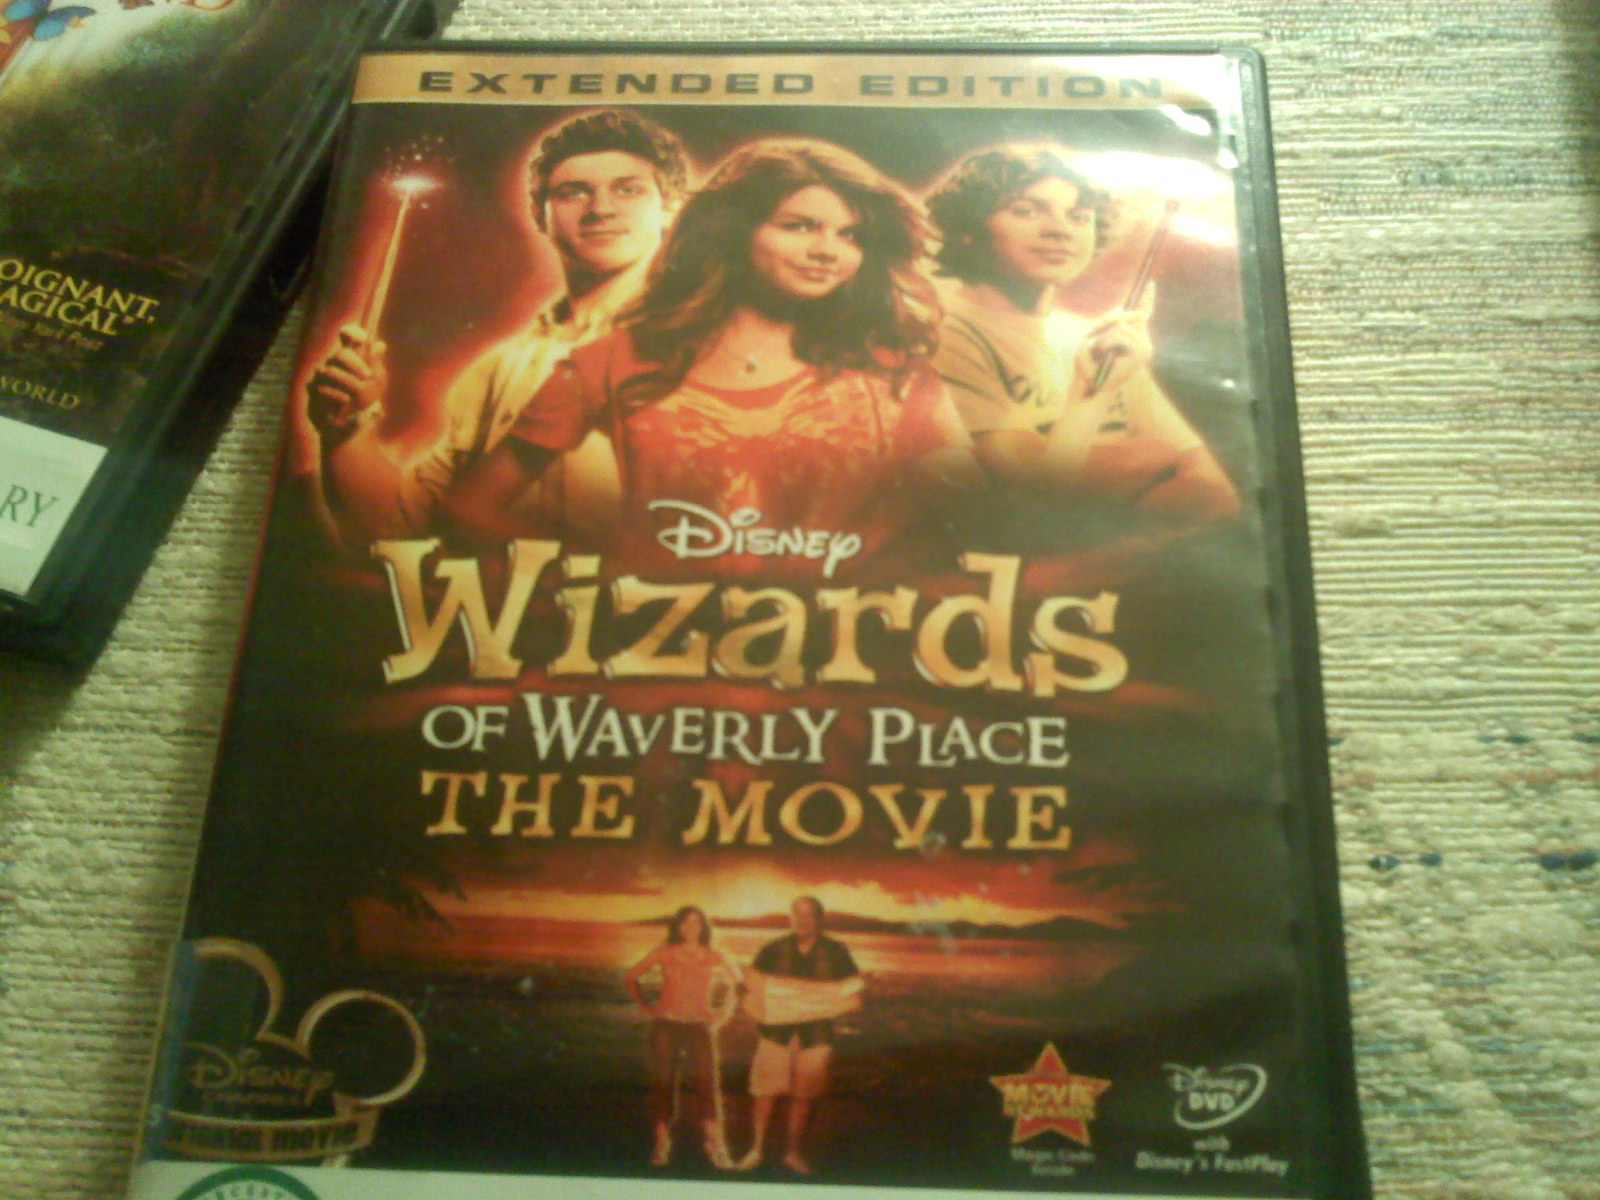 wizards of waverly place | nupurmalhotra's Blog |The Wizards Wiverly Place